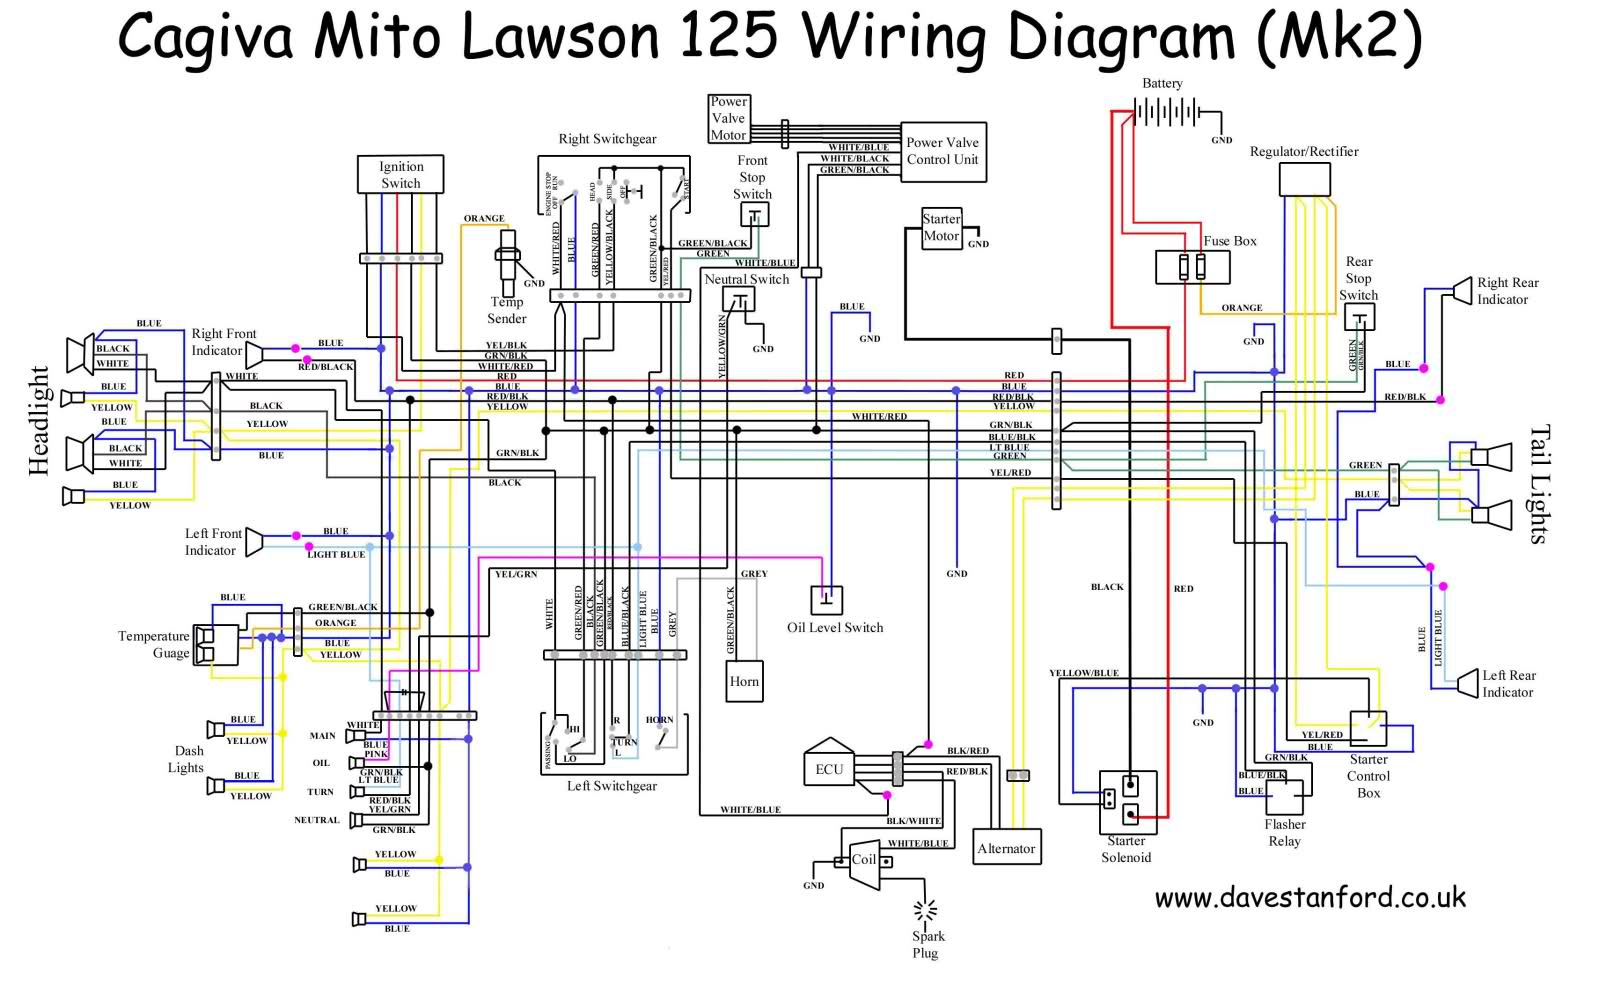 sops0m cagiva mito 125 cagiva mito 125 wiring diagrams electrics 125cc wiring diagram at cos-gaming.co